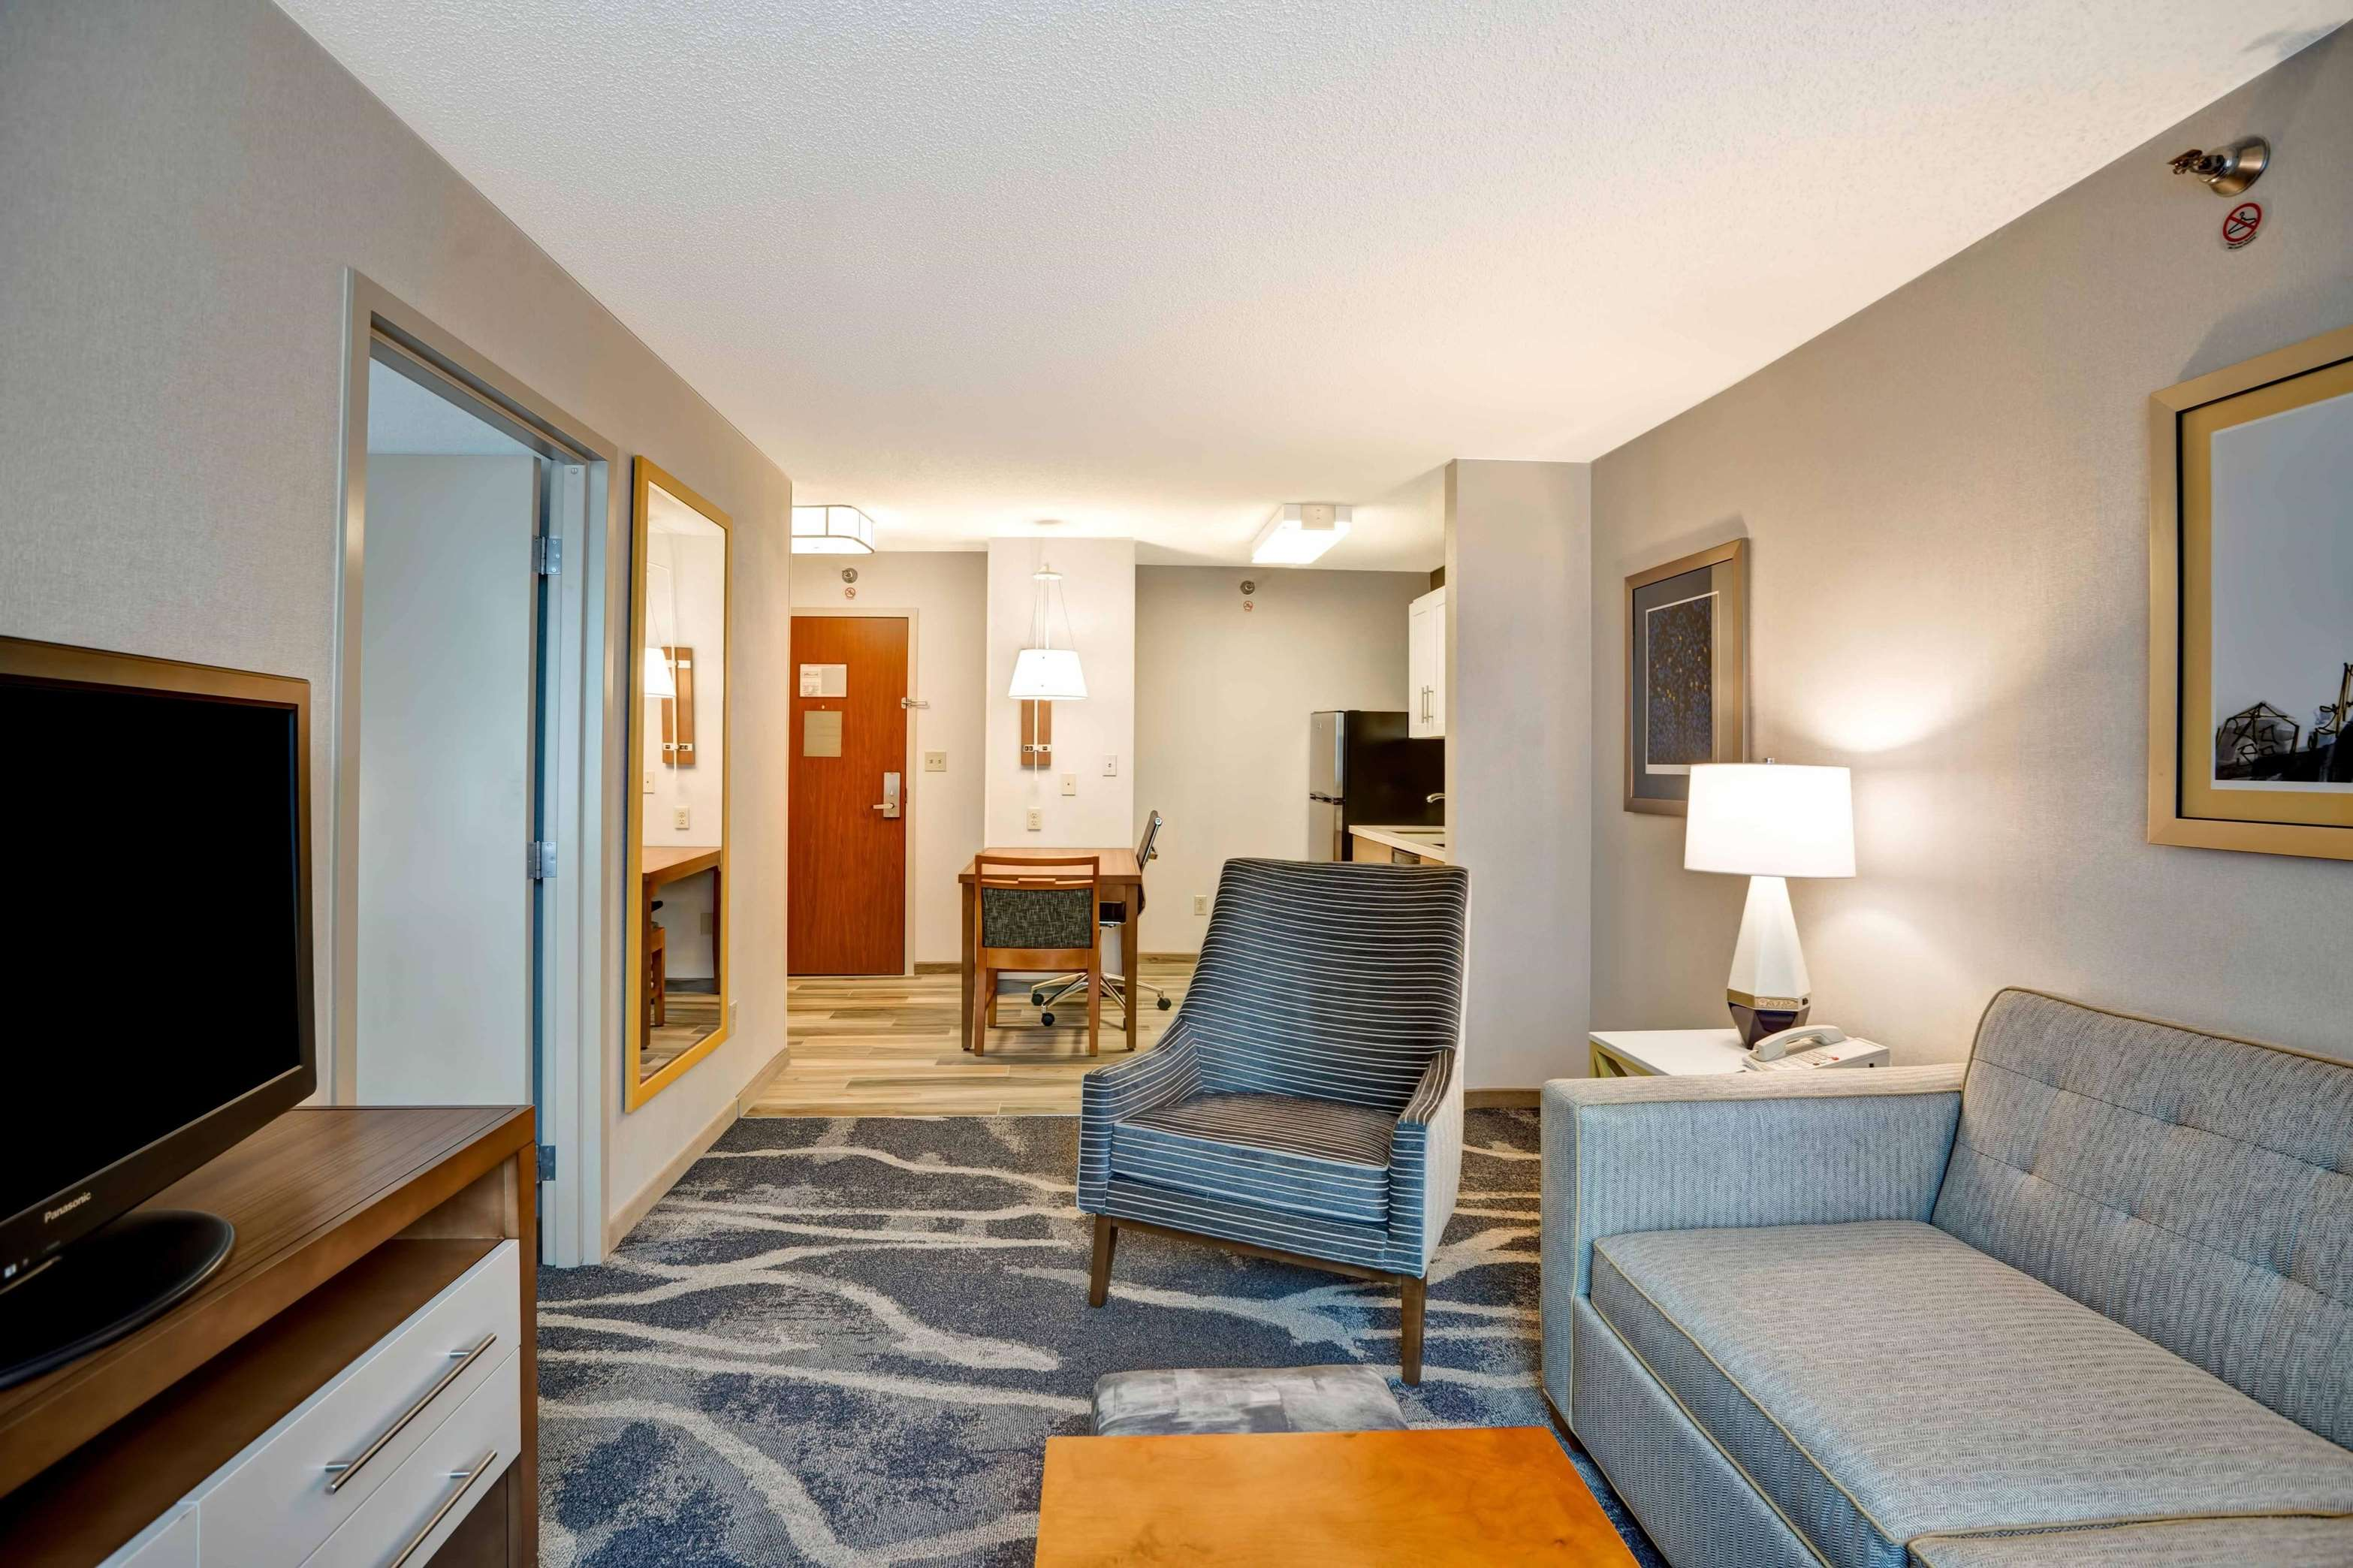 Homewood Suites by Hilton Chicago-Downtown image 47